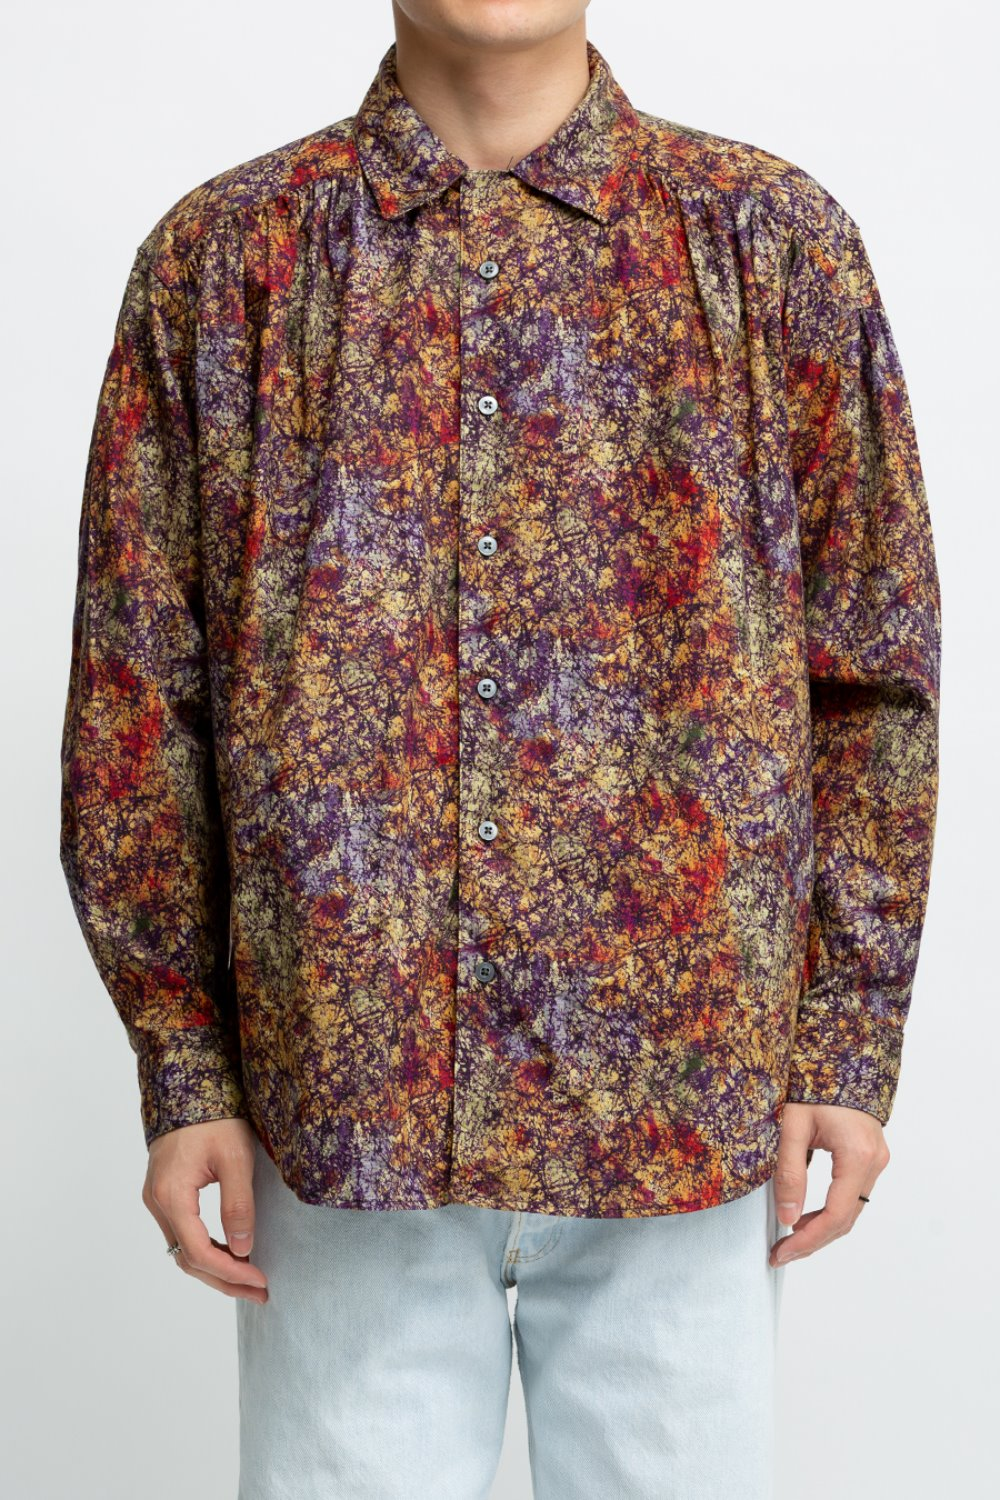 PAINTER SHIRT MULTI COLOR MARBLE BATIK PRINT